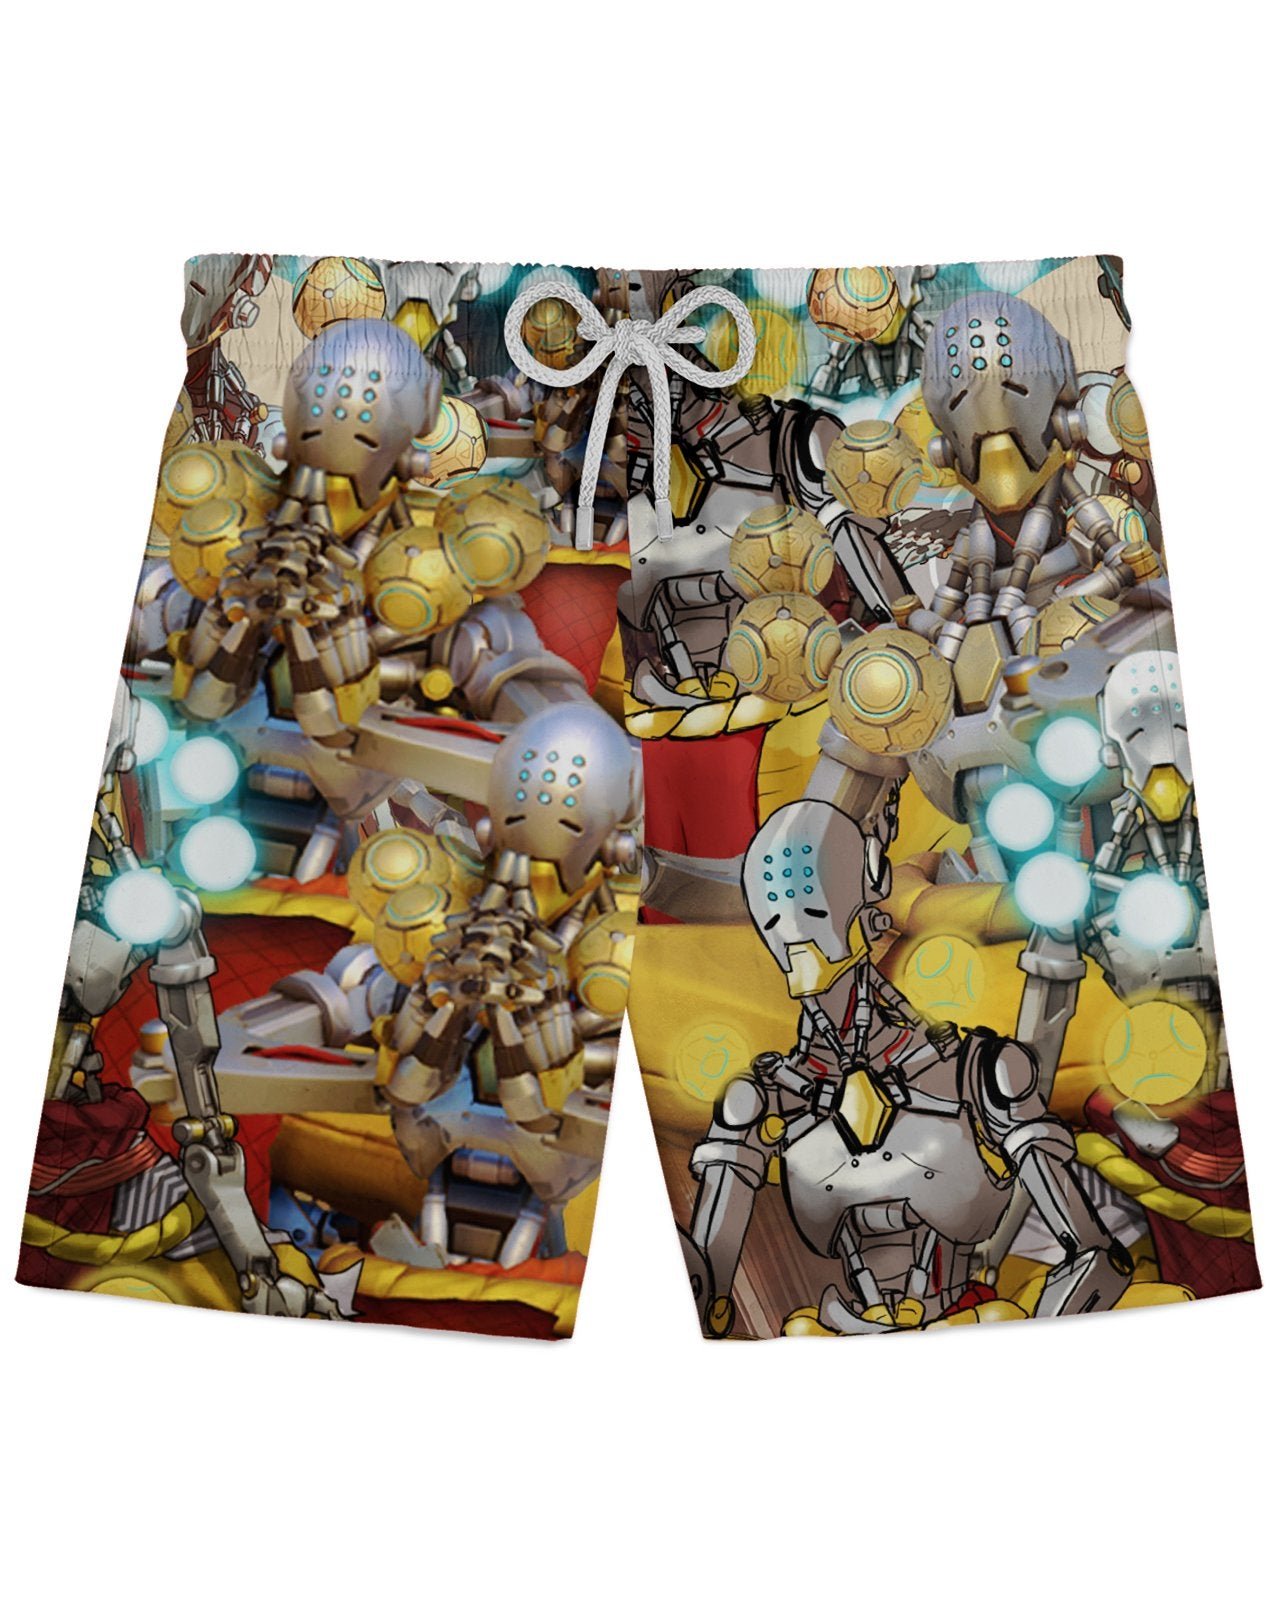 Zenyatta Athletic Shorts